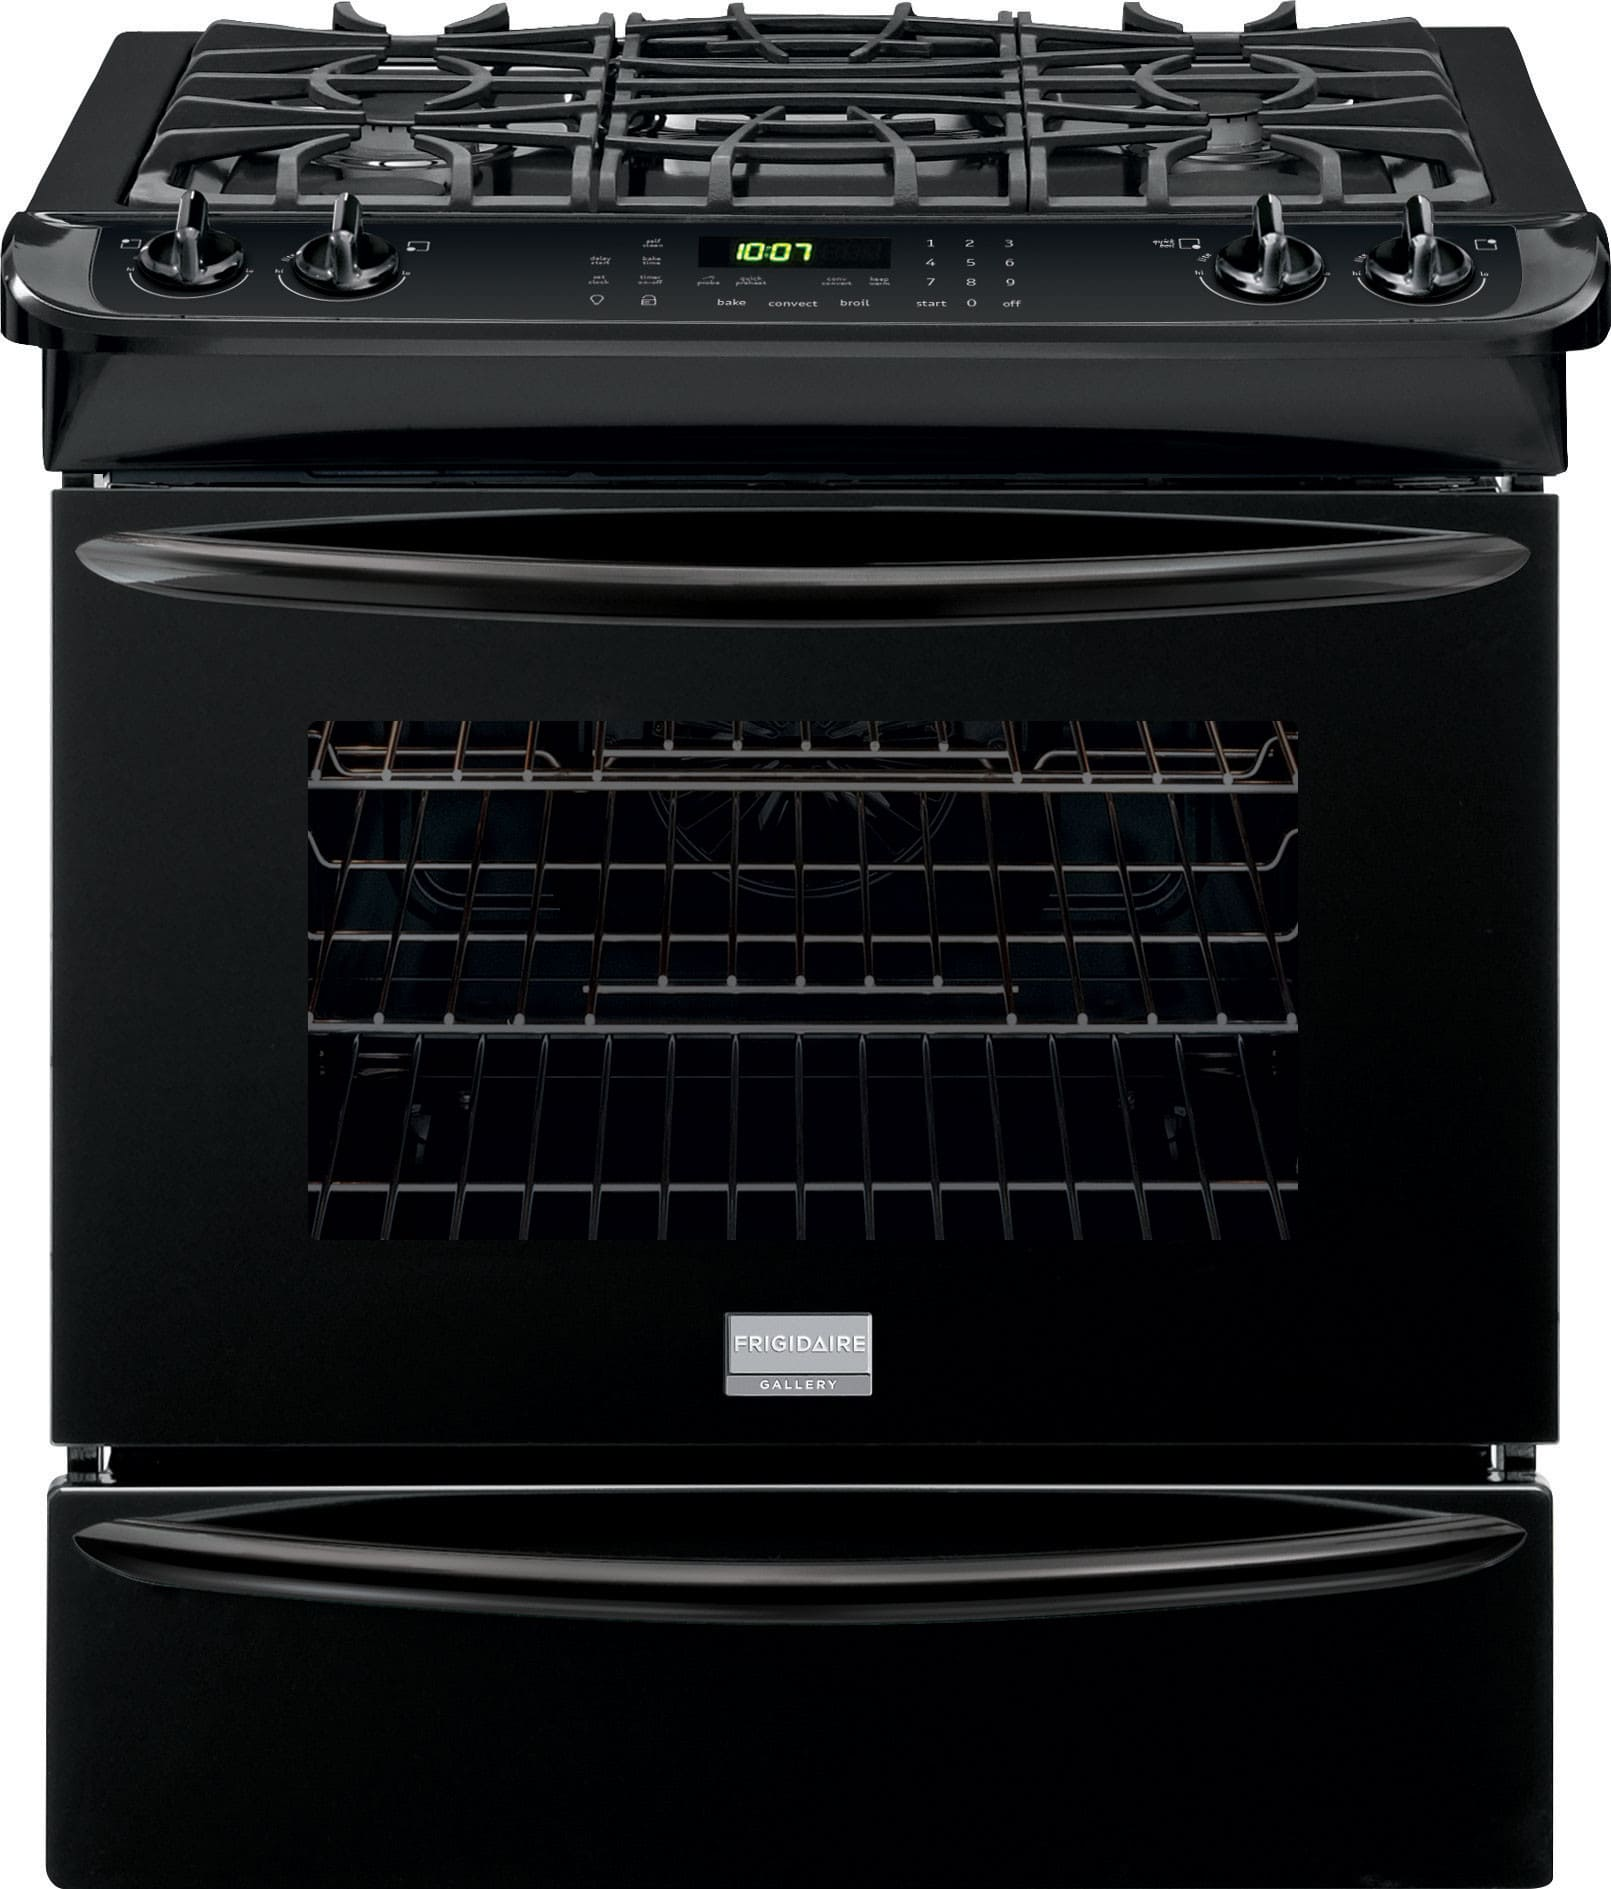 Frigidaire fggs3065pb 30 inch slide in gas range with true convection quick preheat self clean - Clean gas range keep looking new ...